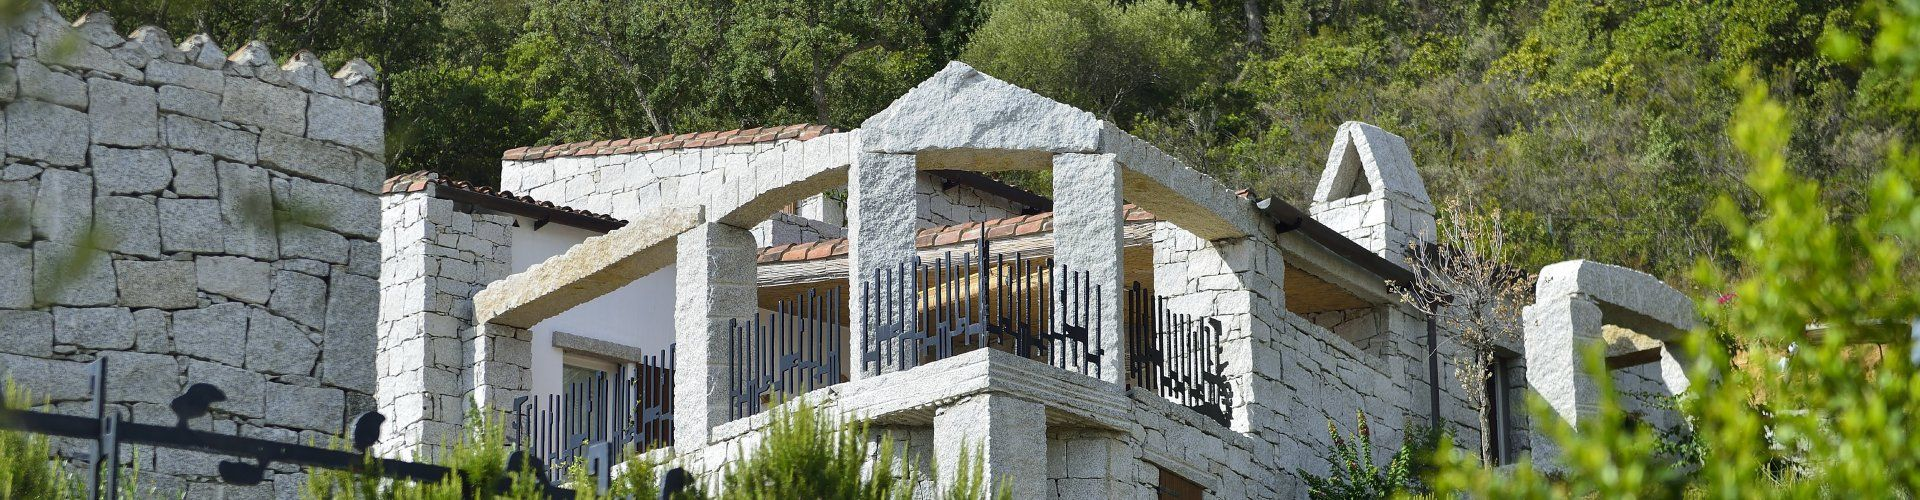 architektonisches Highlight in Süd-Ost Sardinien